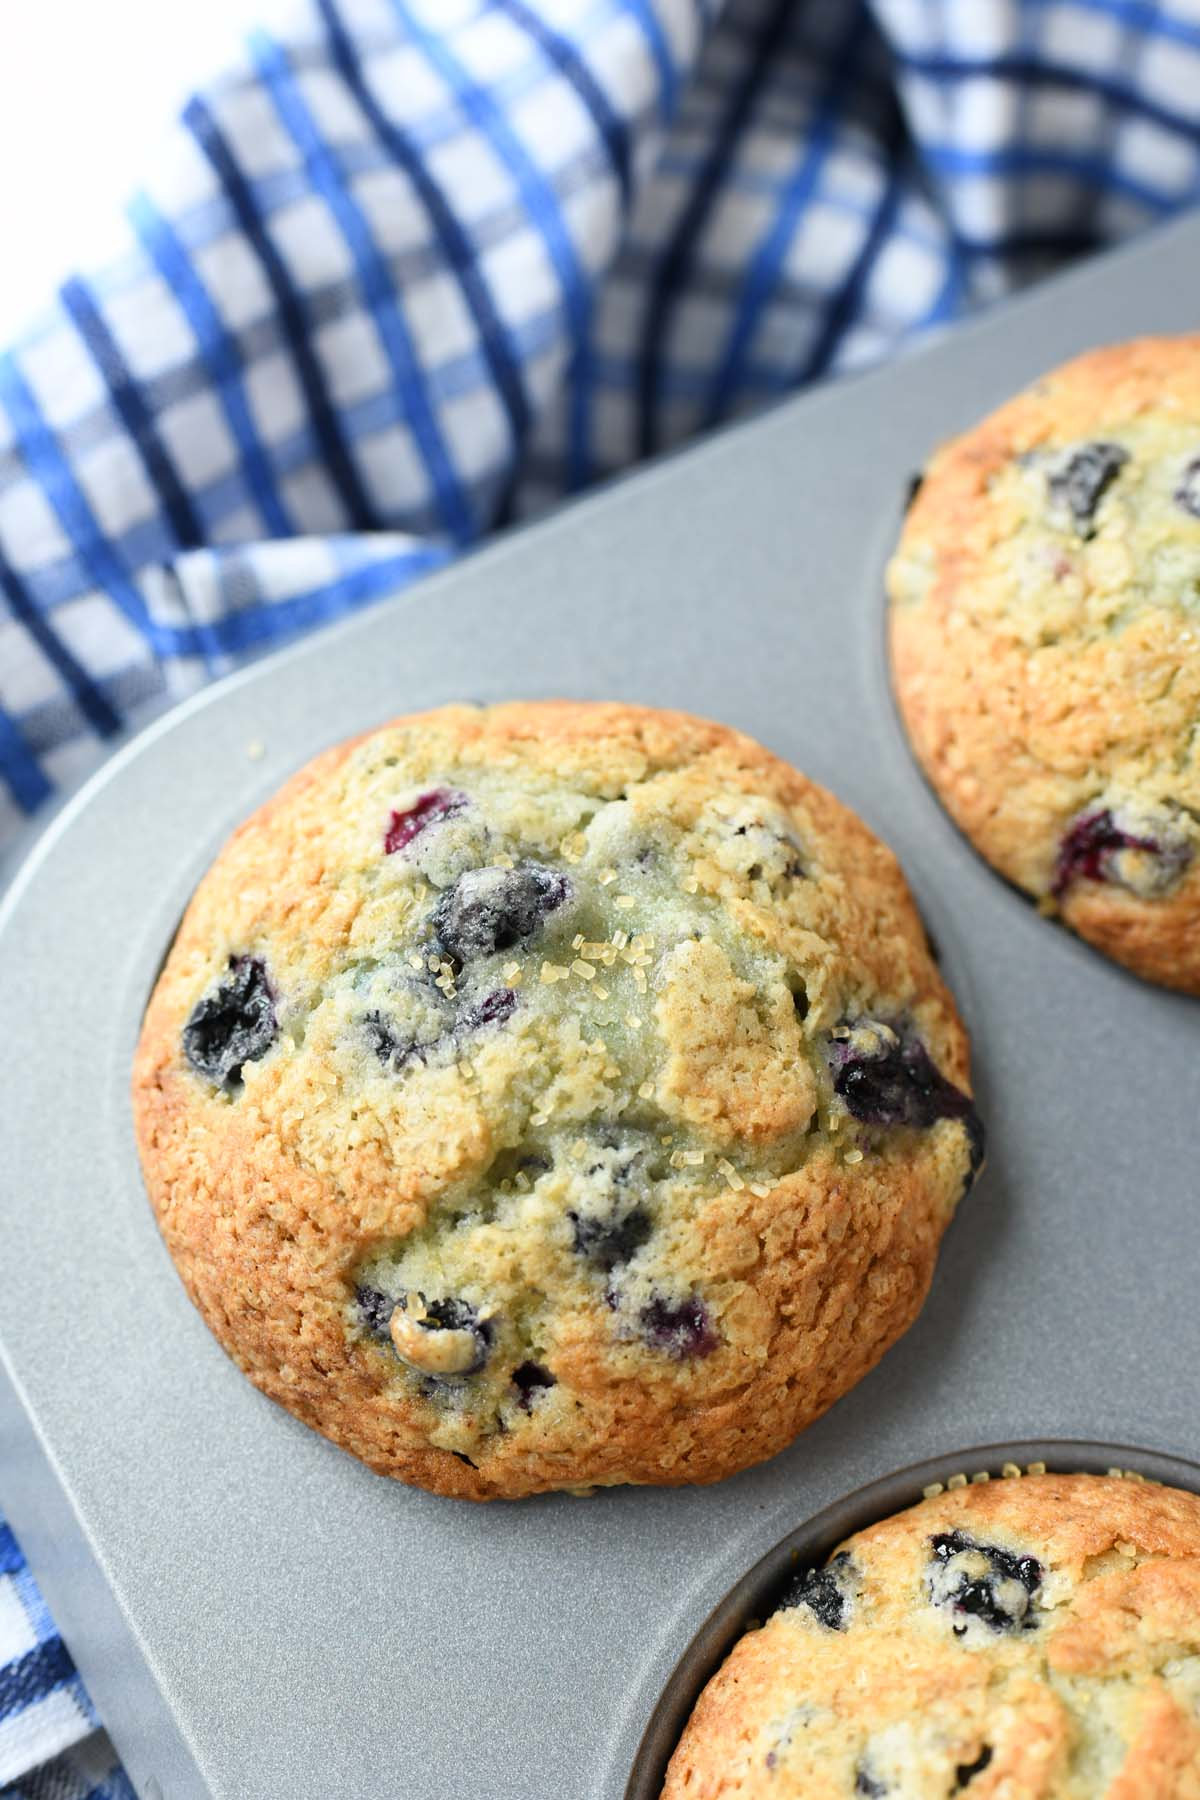 Jumbo blueberry muffin in a silver tin with a blueberry napkin.